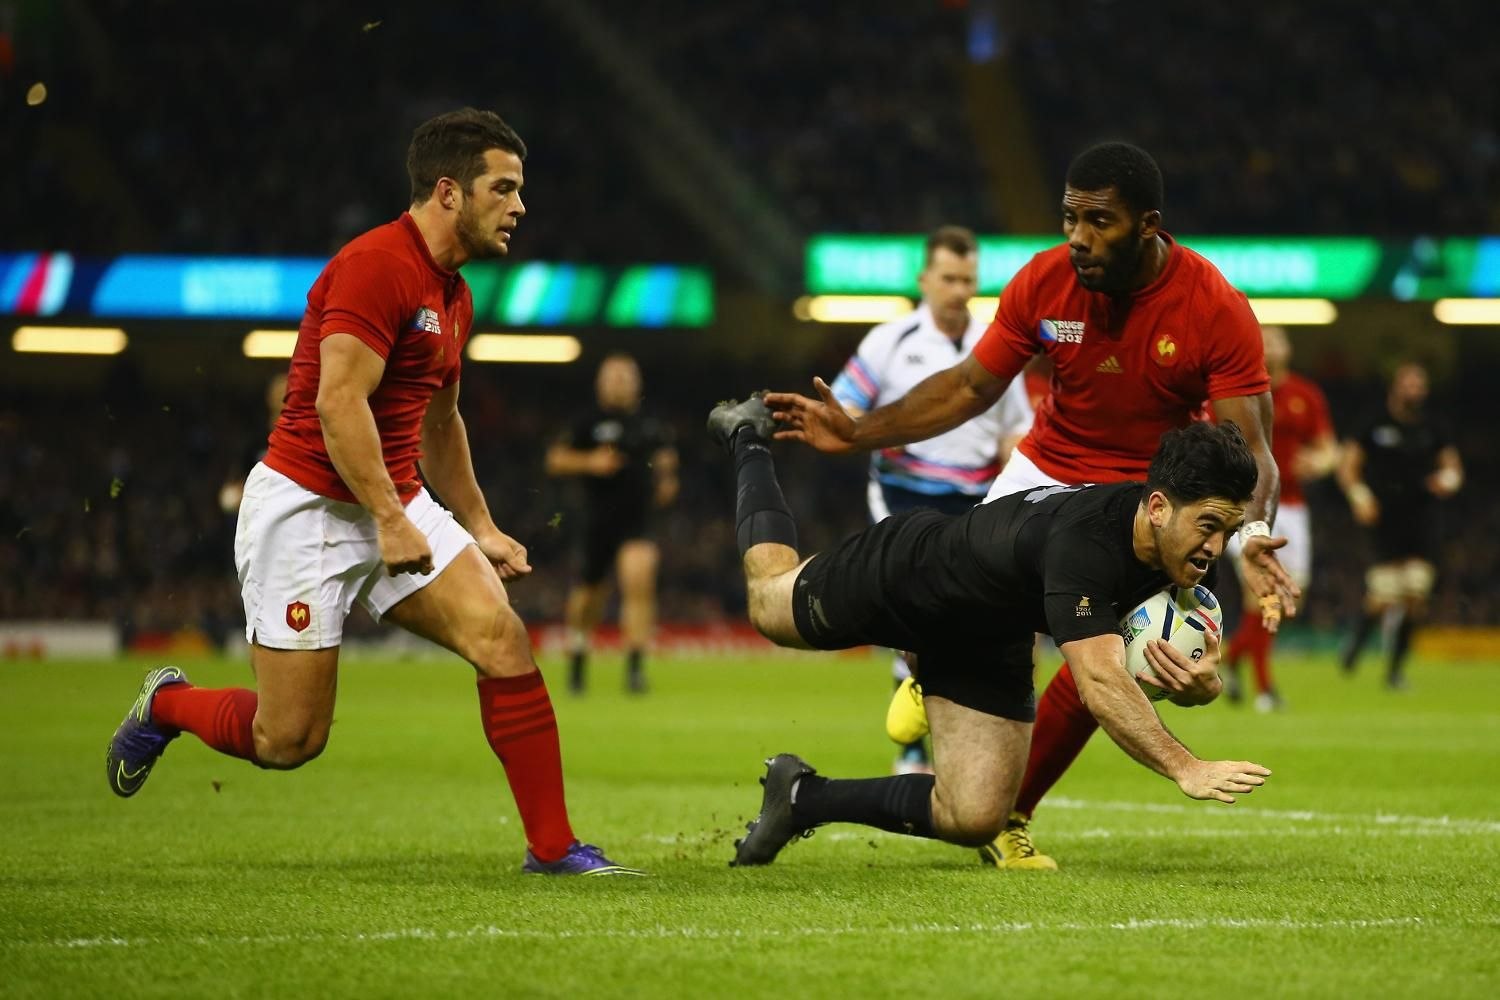 Rugby World Cup 2015 Power Play Nehe Milner Skudder Weaves His Way Through The France Defence To Score The All Blacks Second Try